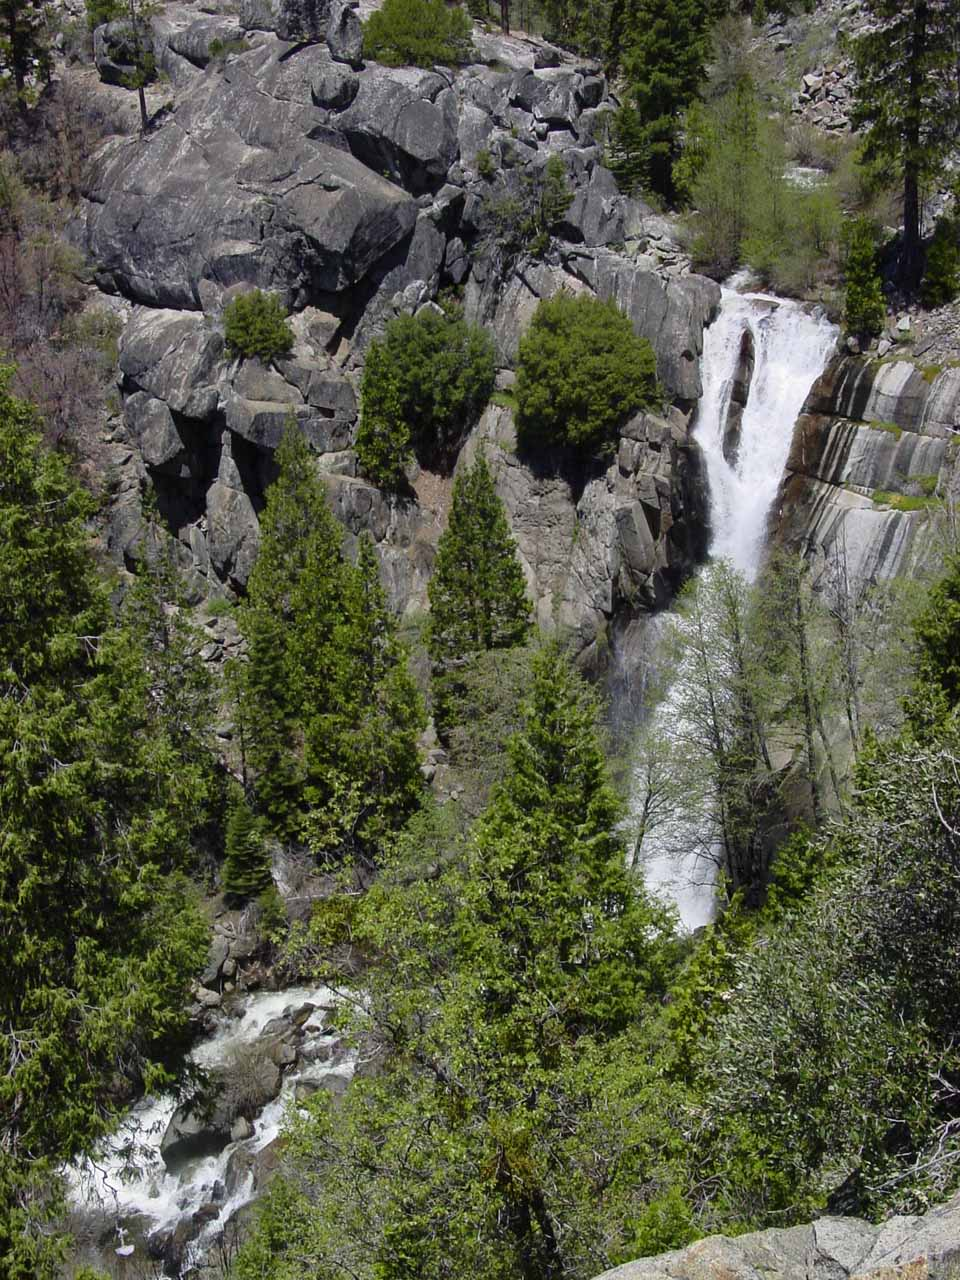 Perhaps the most satisfying shot of Alder Creek Falls that I could get from the trail